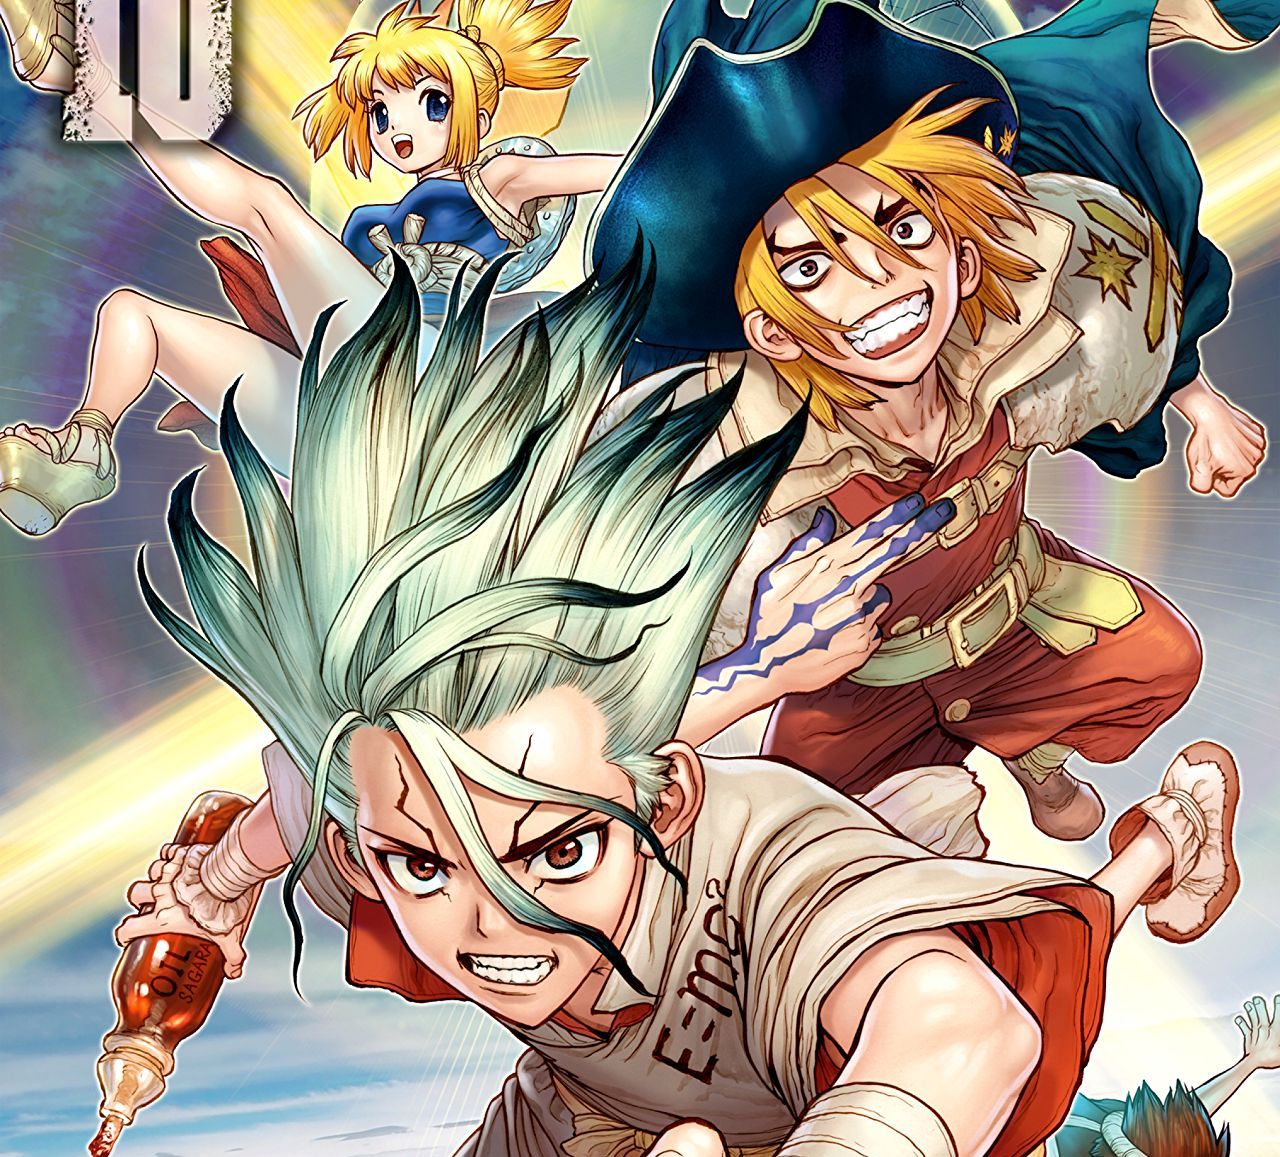 Dr. STONE Vol. 10 Review